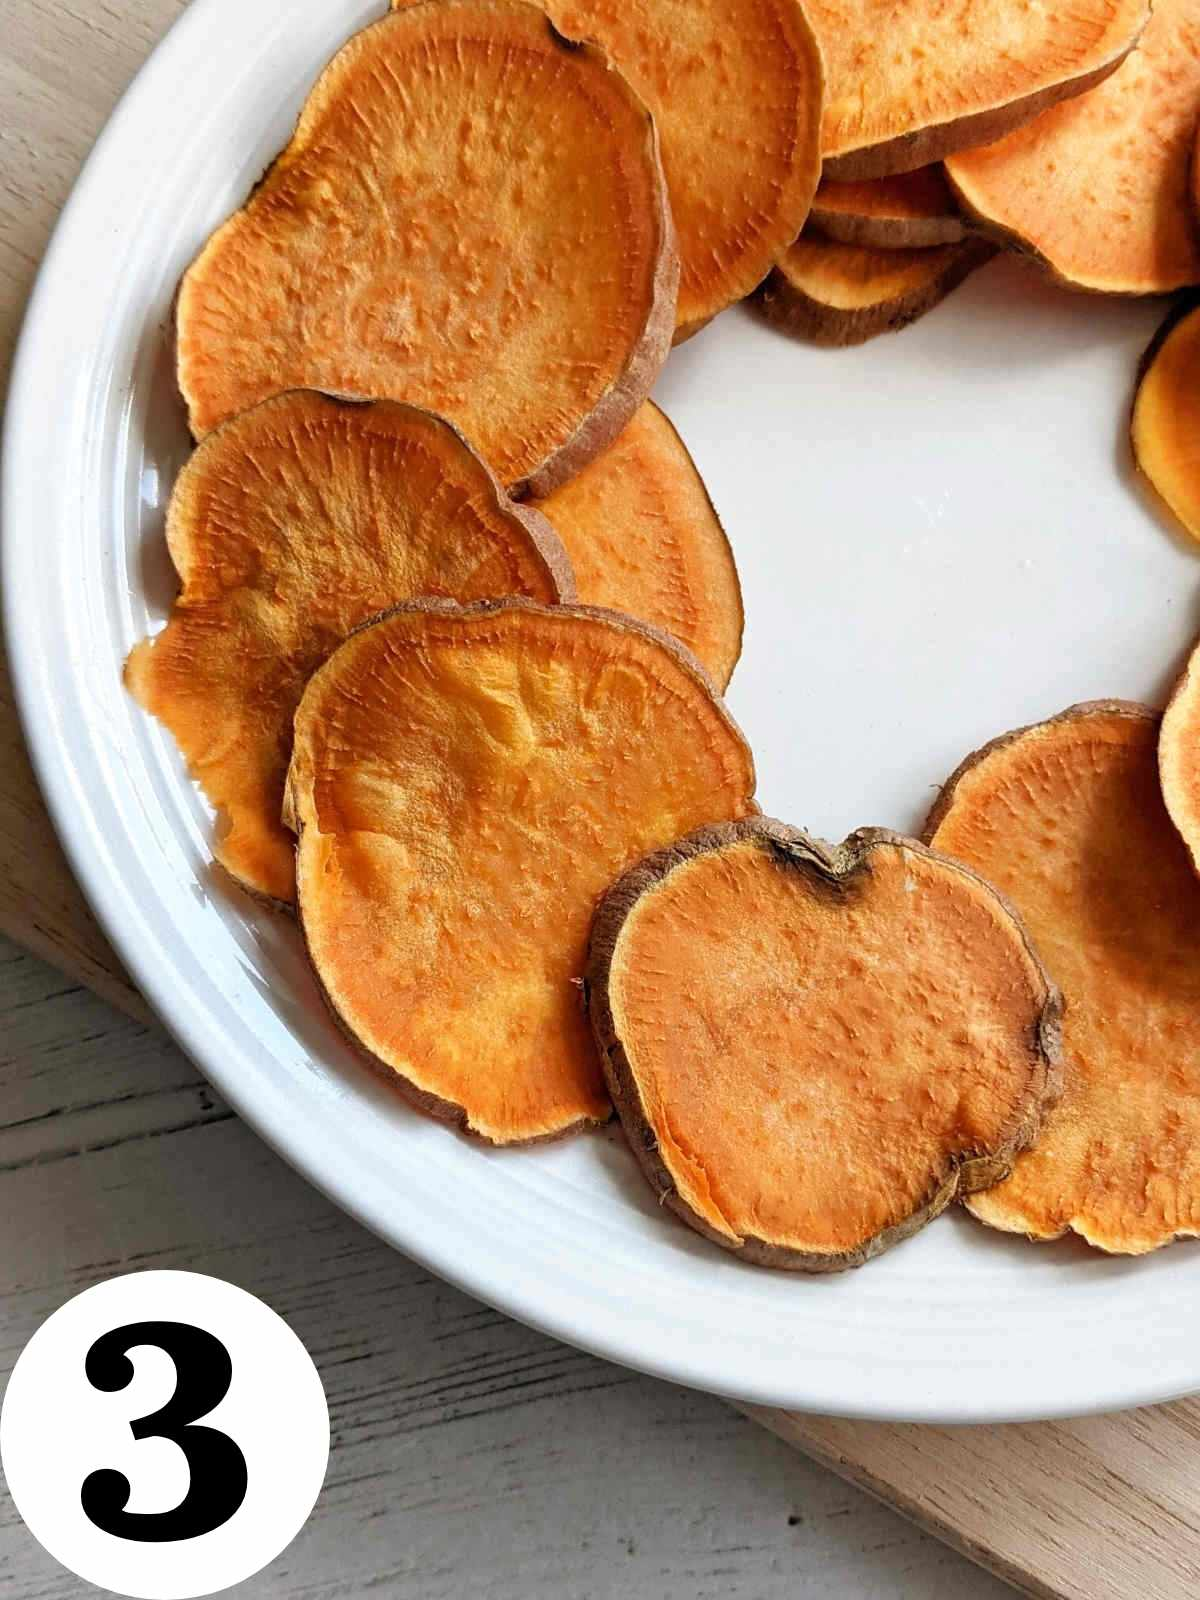 Cooked sliced sweet potato on a plate.